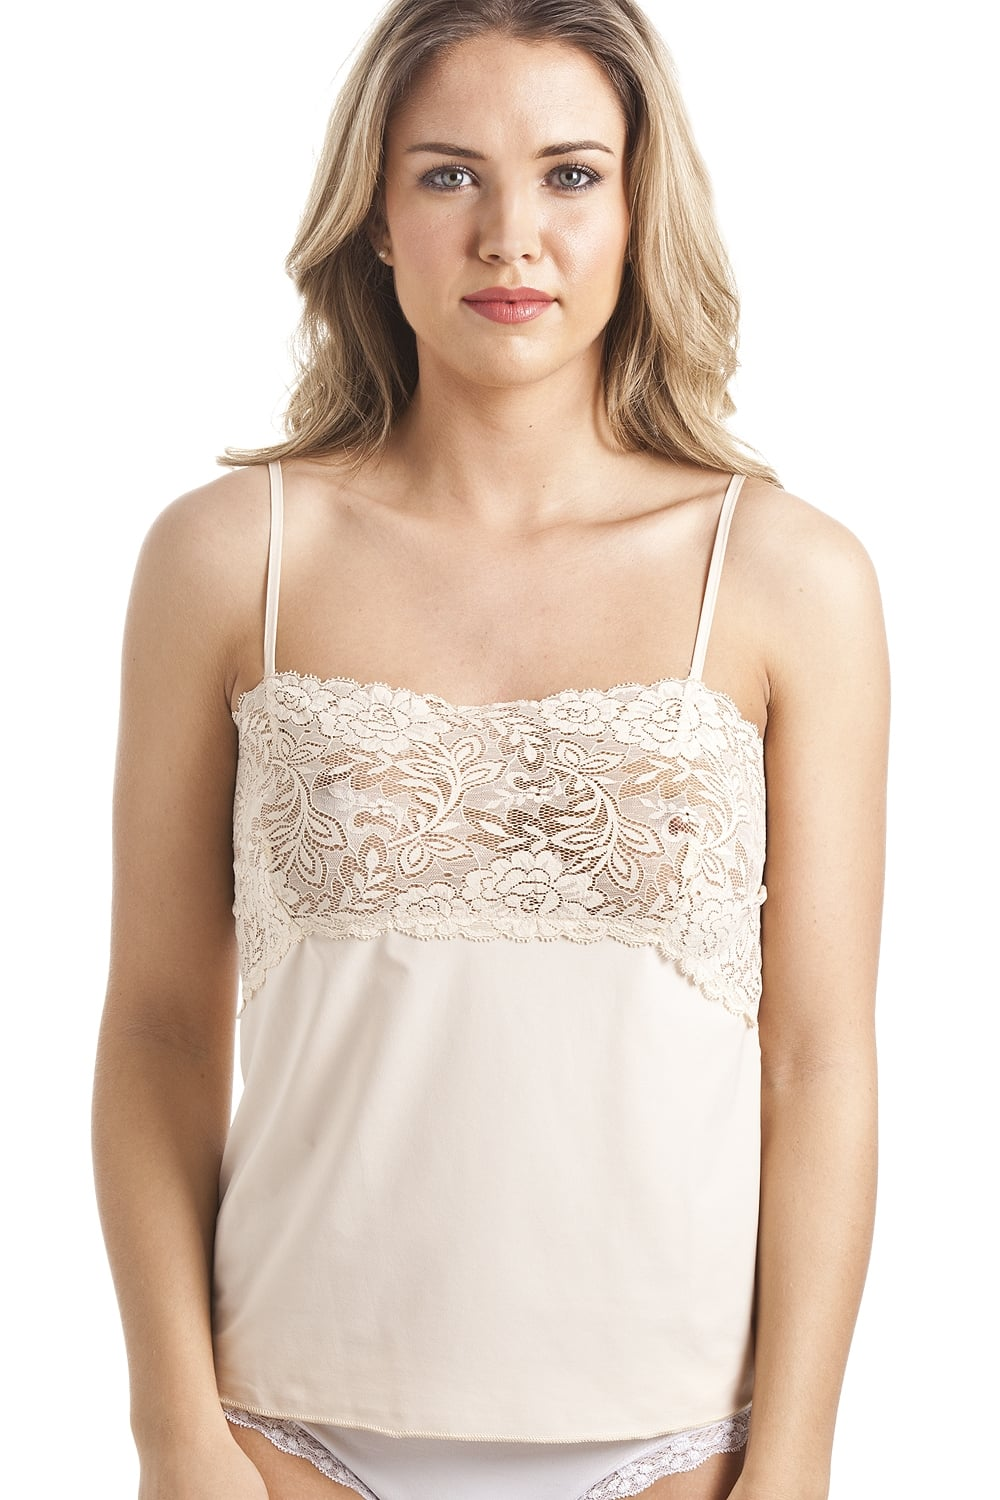 For tops lace women 18 camisole 2017 and sleeves turkey